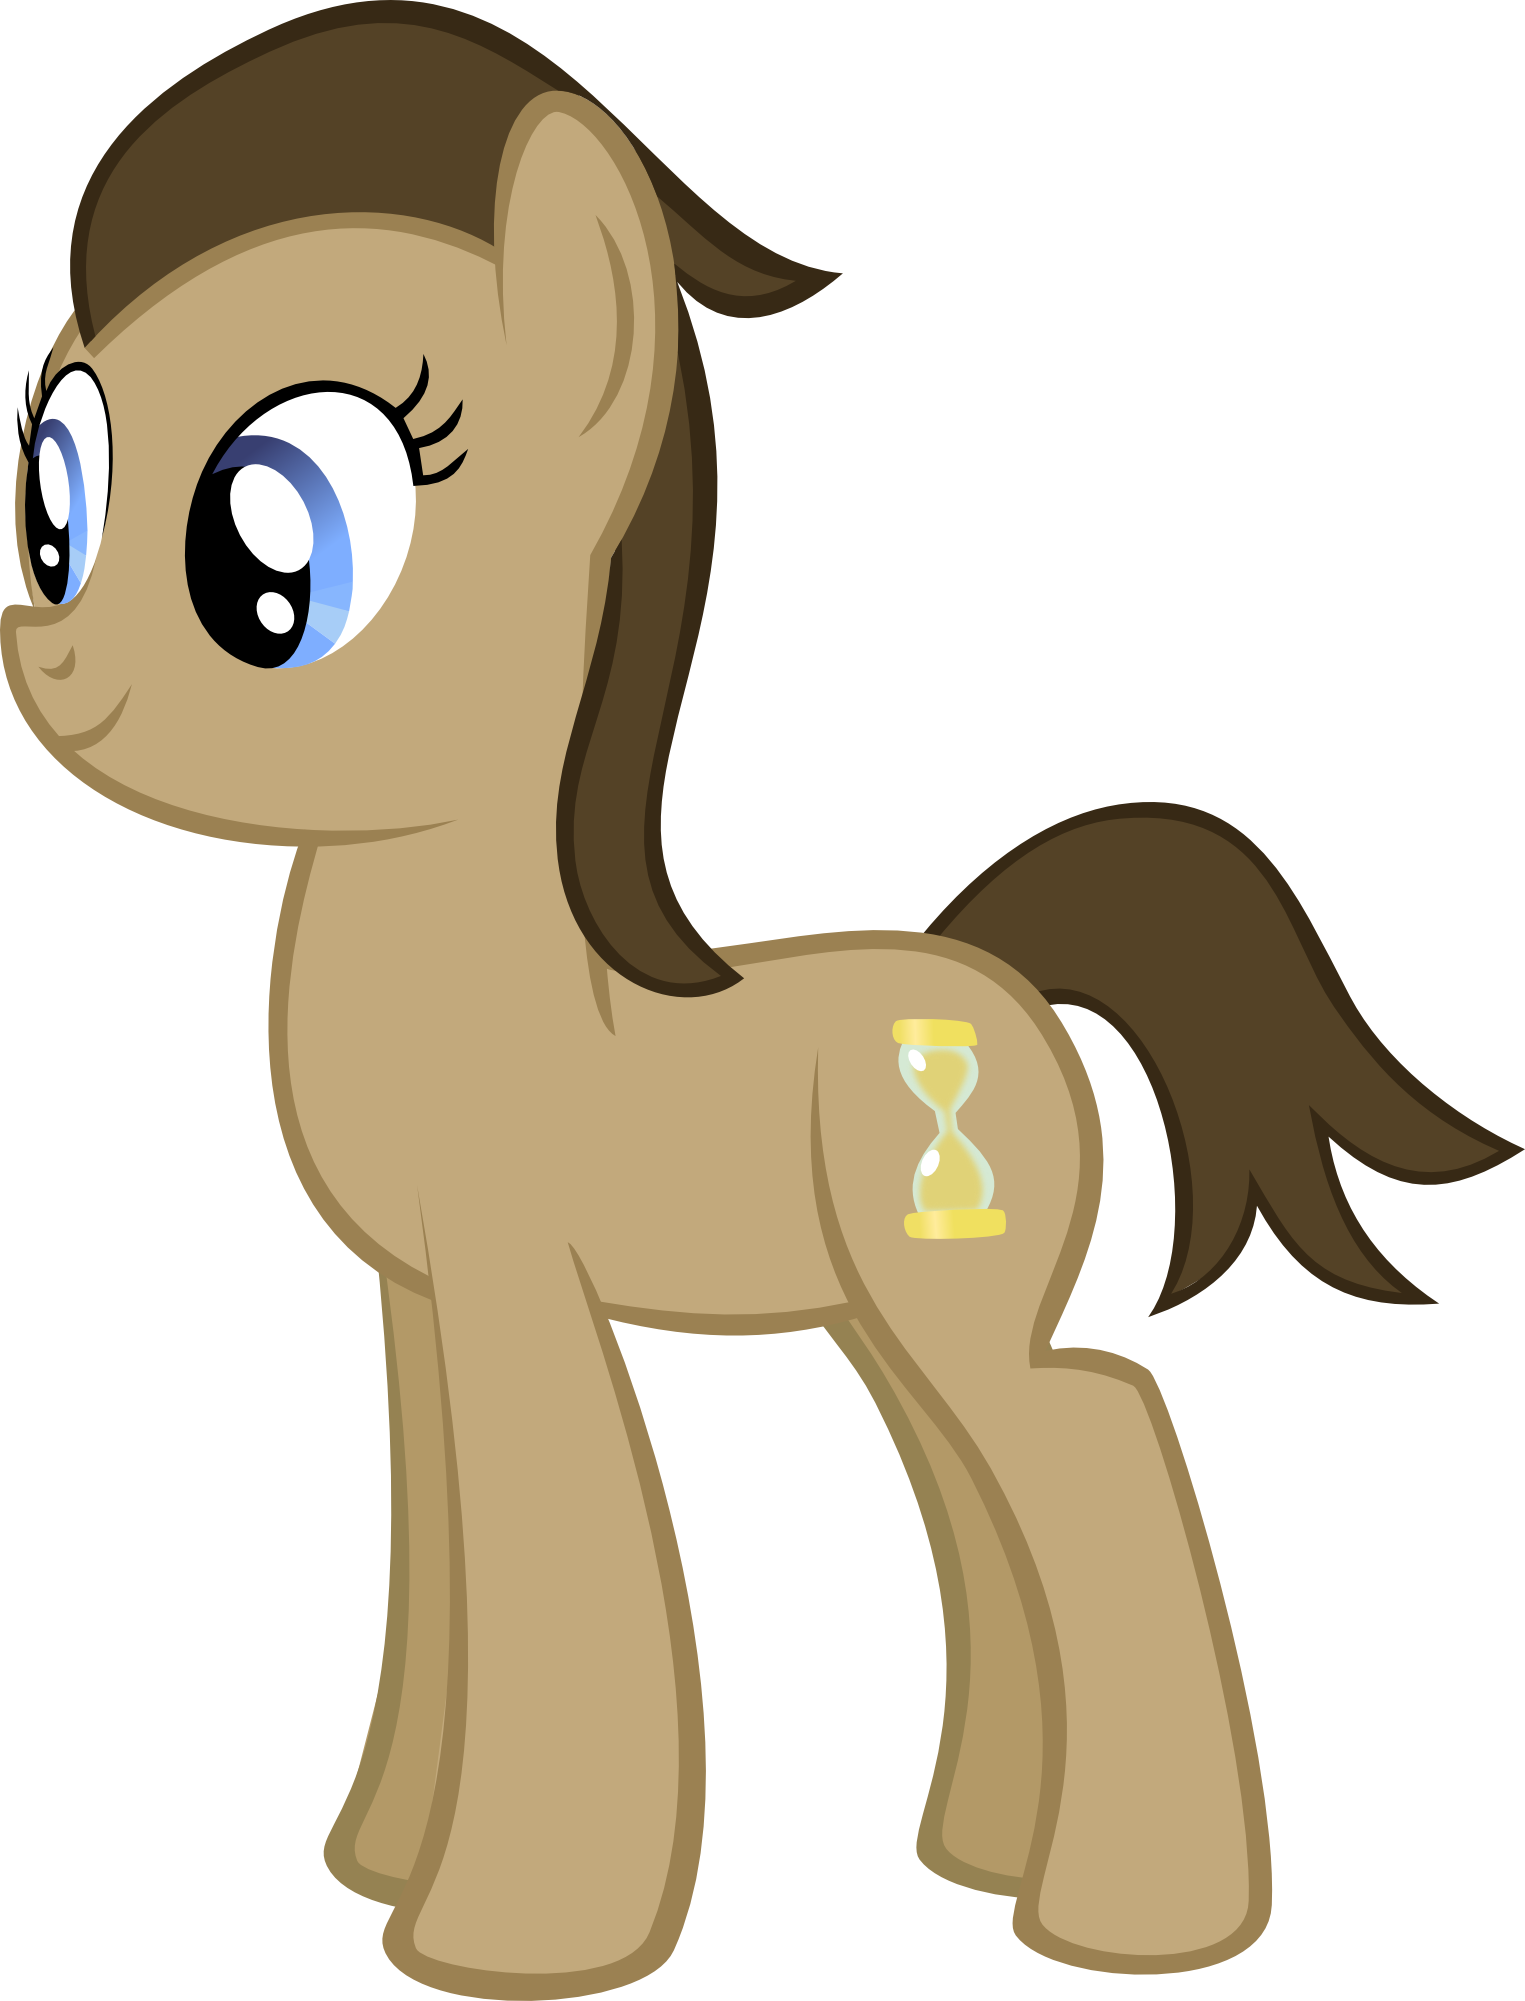 Doctress Whooves My Little Pony Friendship Is Magic Know Your Meme Scootaloo was released 9 times in the classic core 7 pose. doctress whooves my little pony